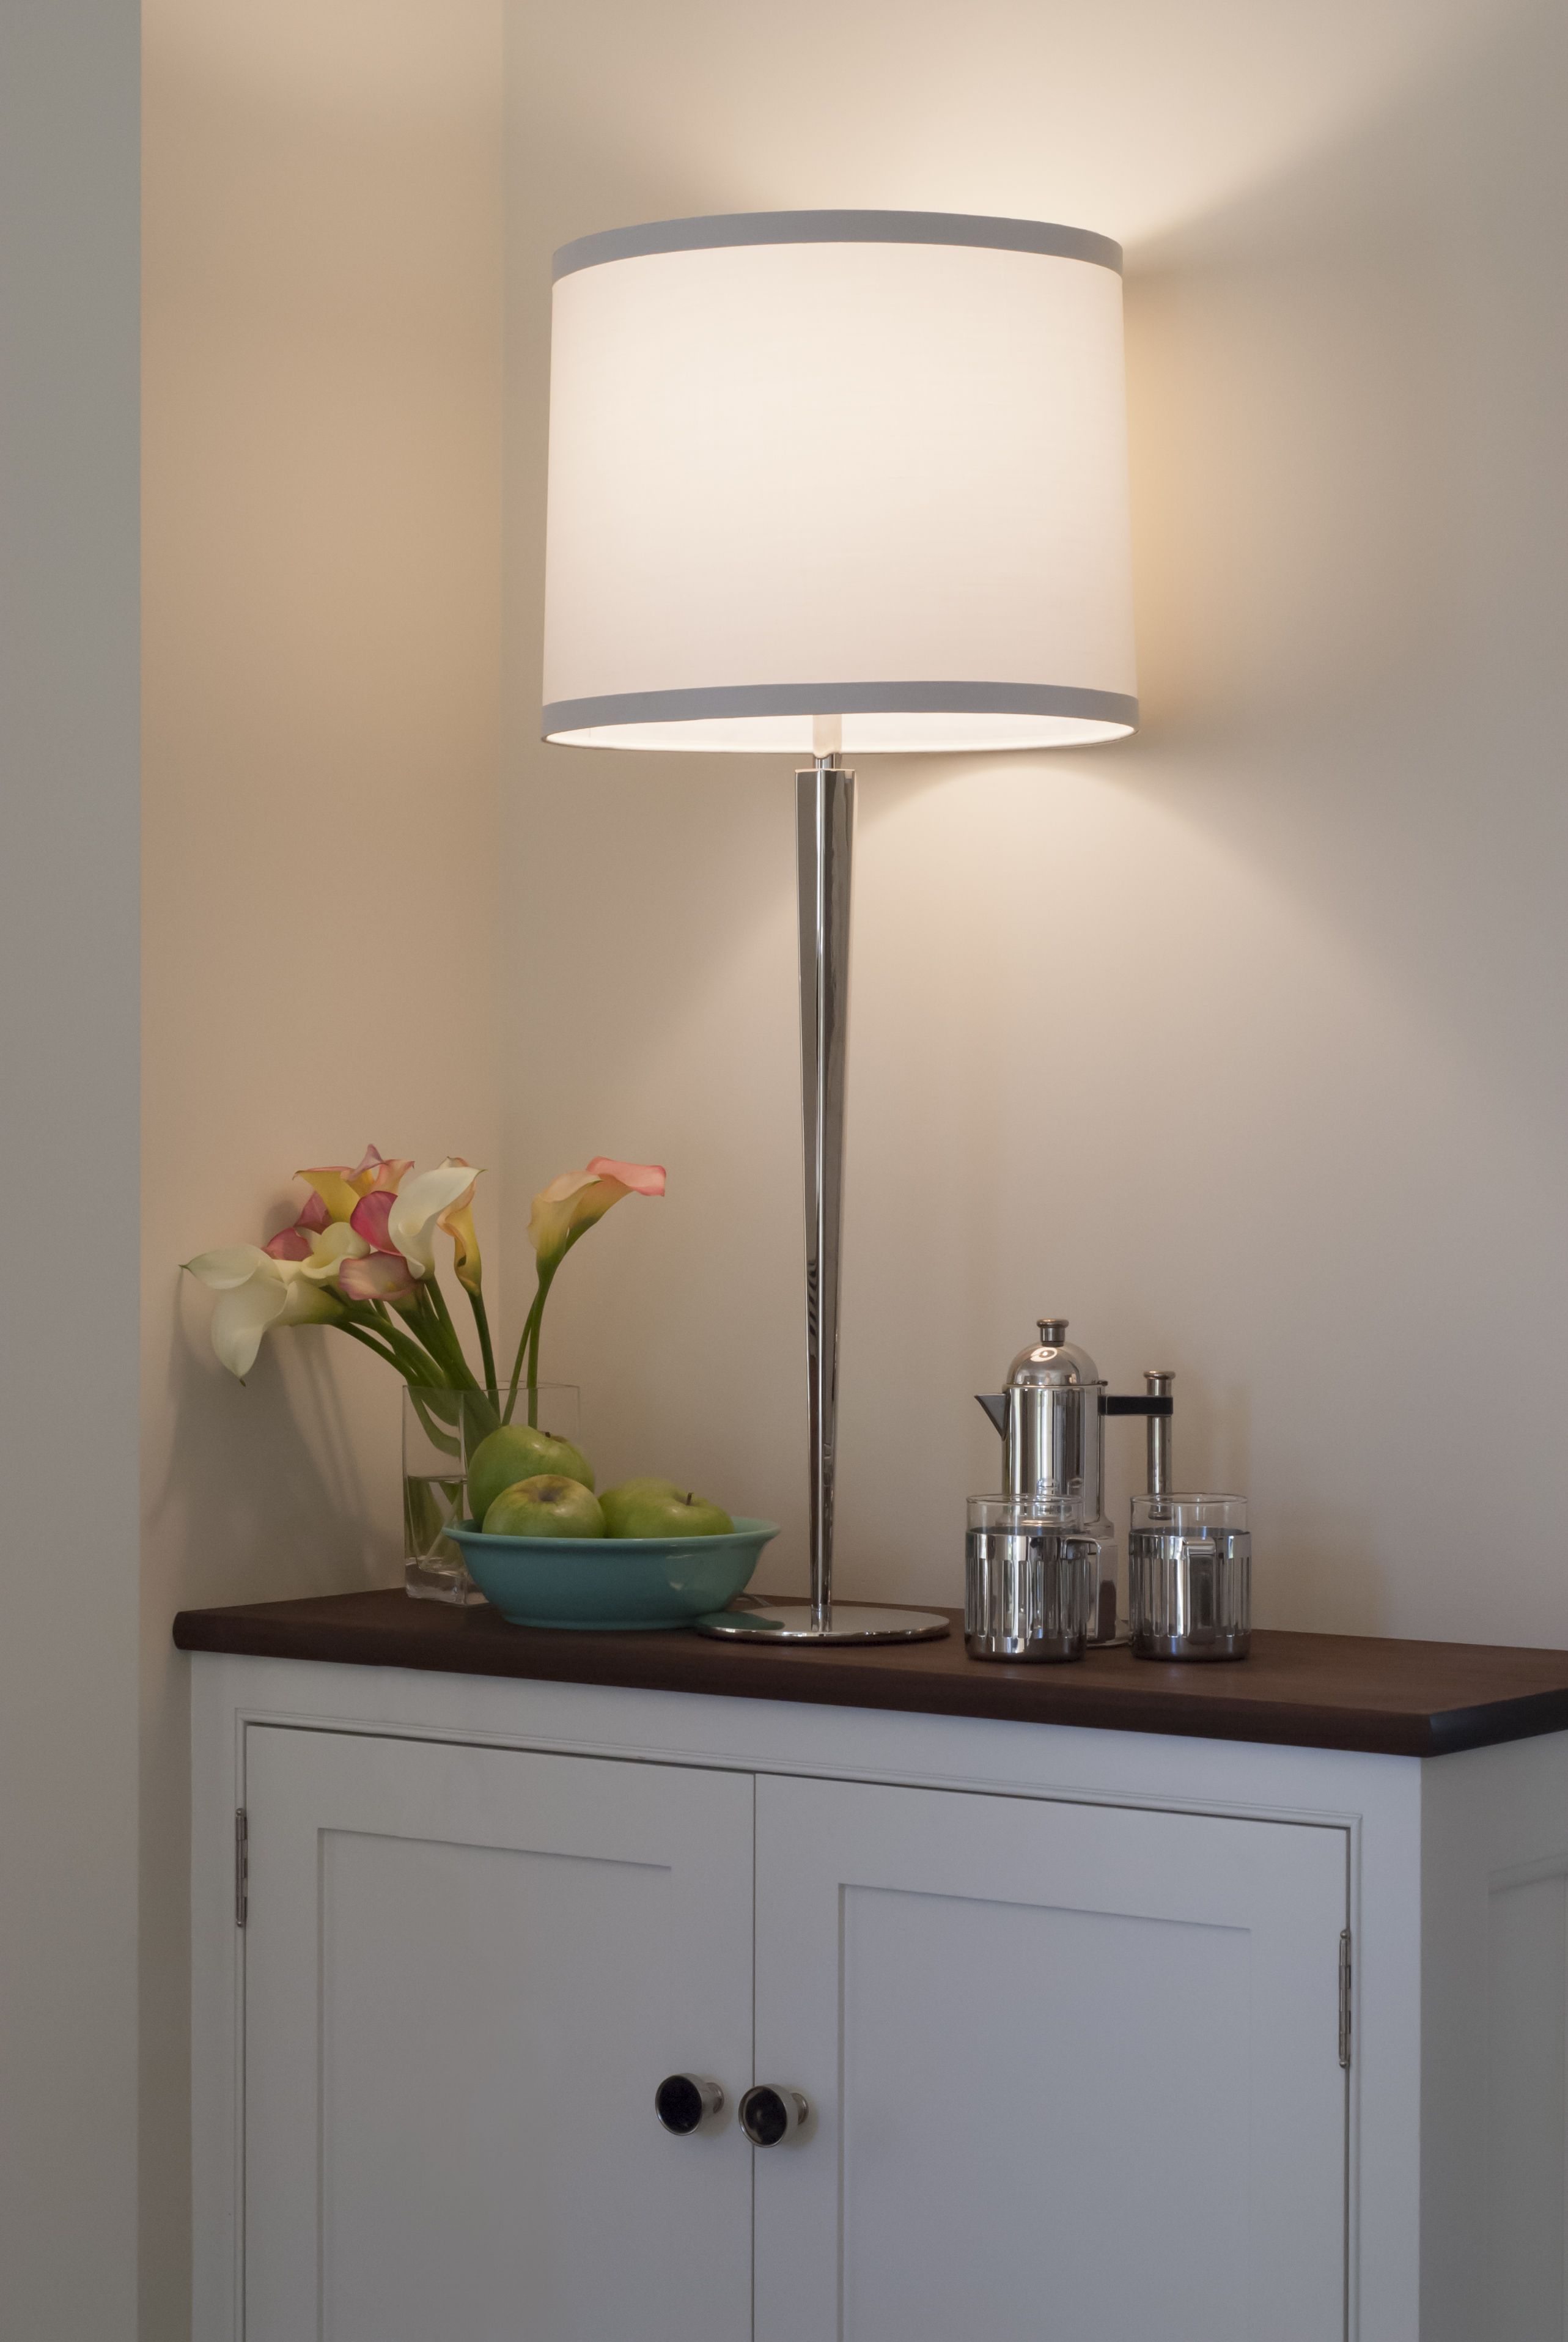 Boyd Lighting S Pacific Heights Table Lamp Grand Was Designed By Barbara Barry Extra Tall At 34 3 4 Inches And Clic In Inspiration It Embos The